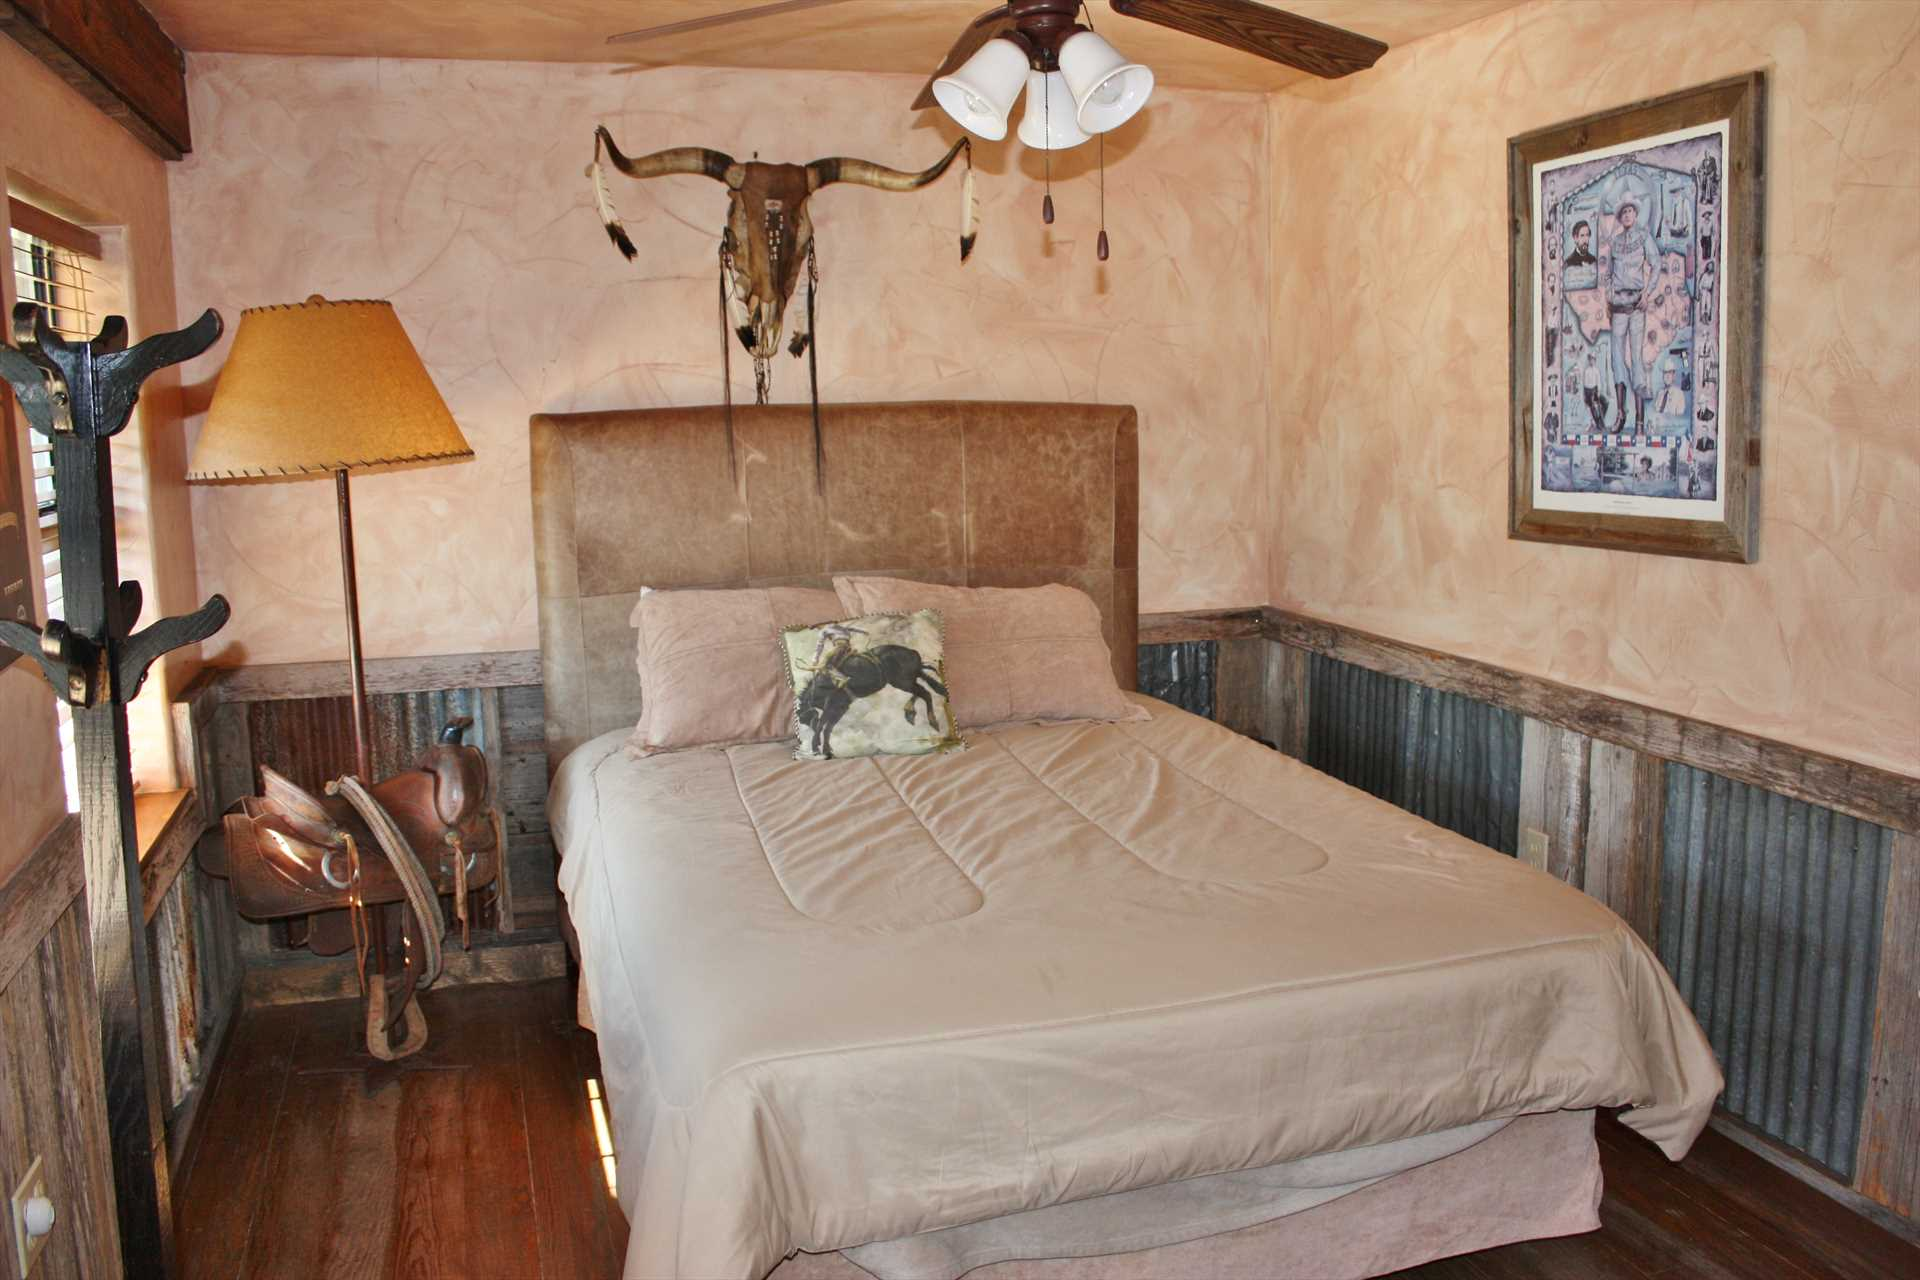 Hill Country views and warming natural light fill the interior spaces here, too!